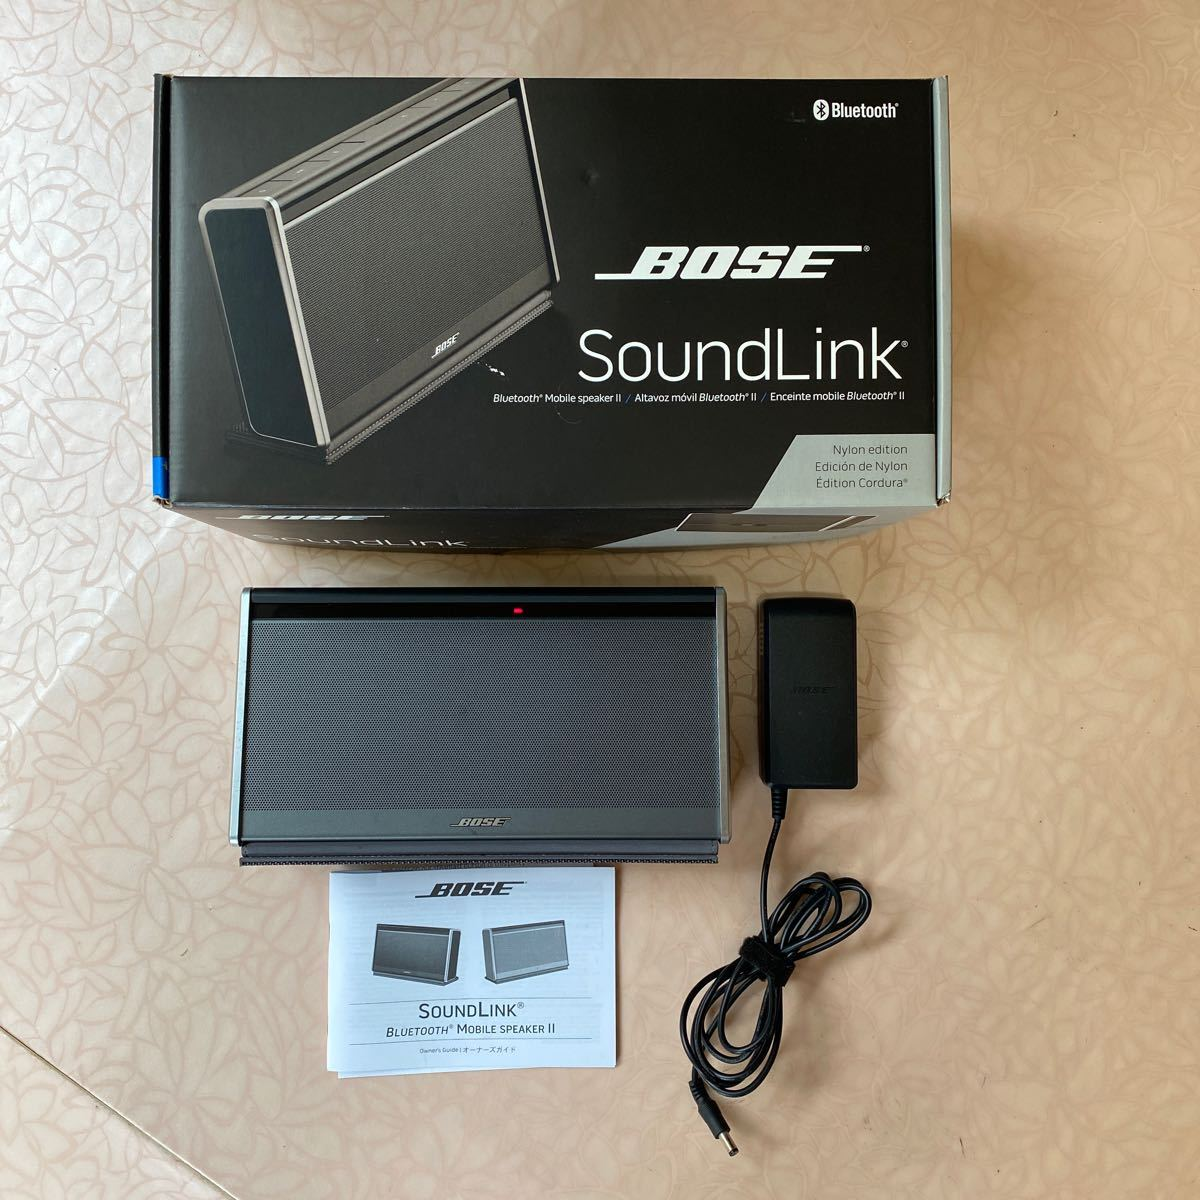 BOSE SoundLink Bluetooth Mobile speaker Ⅱ